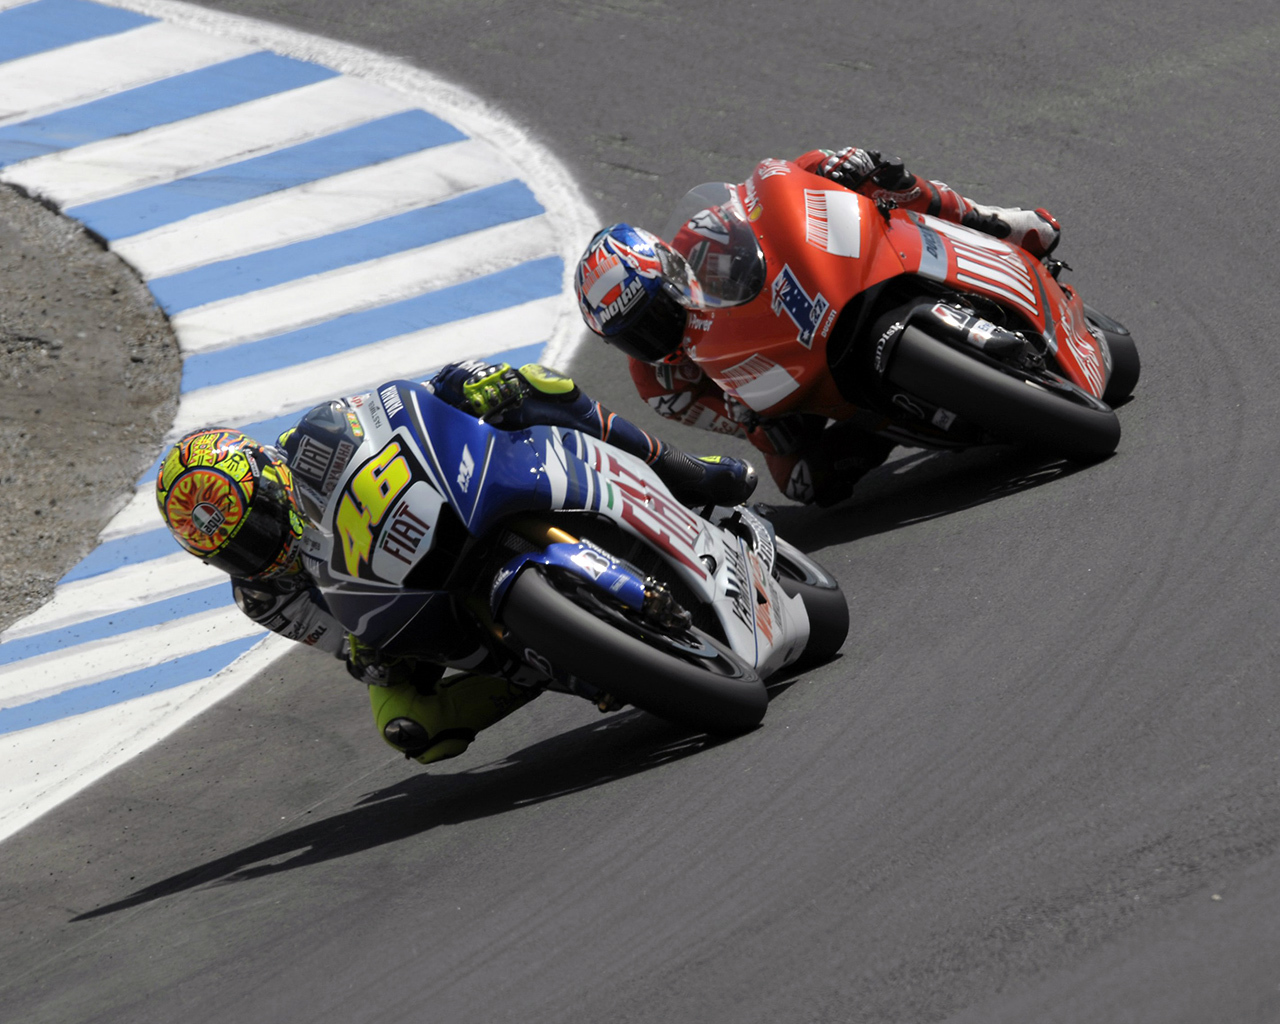 Moto gp motorbikes valentino HD Wallpaper